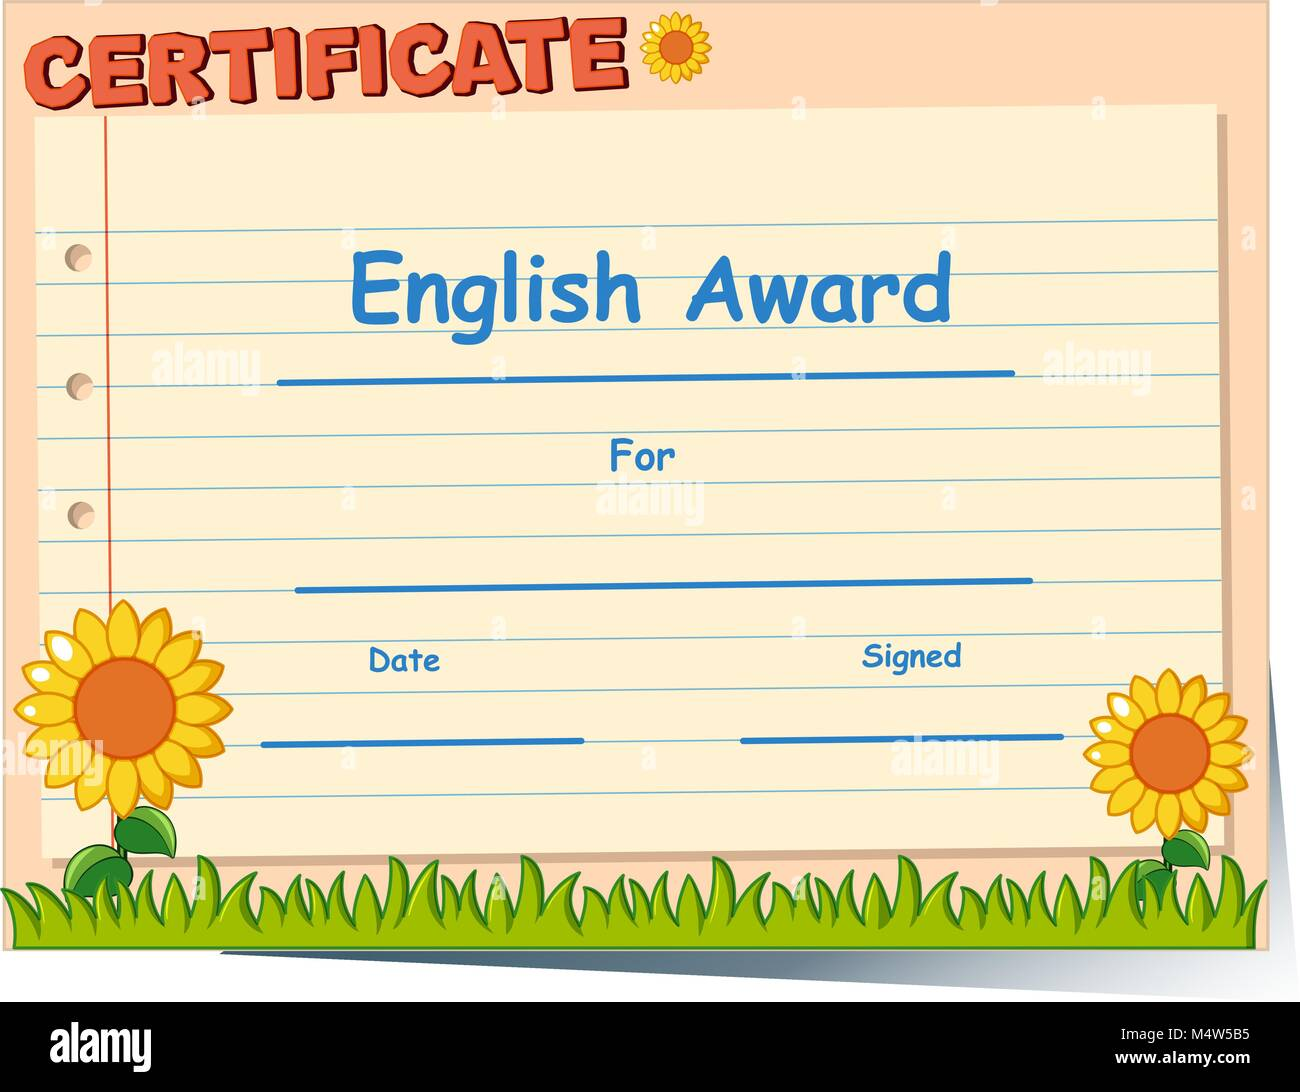 English garden stock vector images alamy certificate template for english award illustration stock vector yelopaper Choice Image